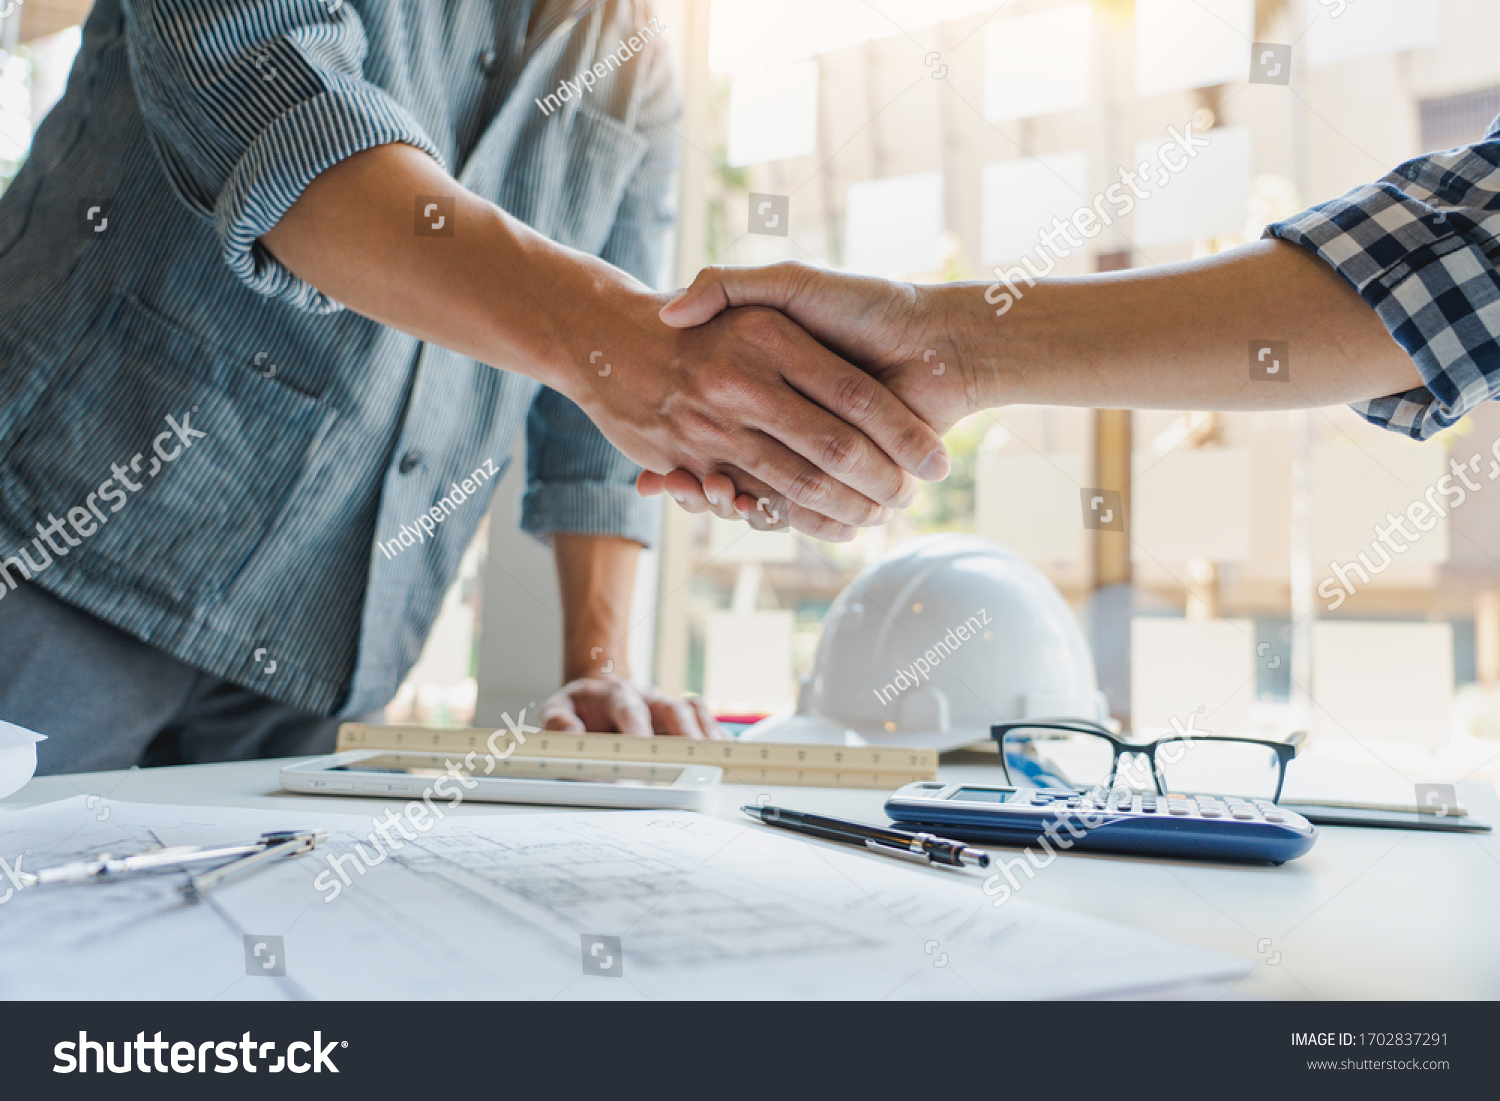 Architect and engineer construction workers shaking hands while working for teamwork and cooperation concept after finish an agreement in the office construction site, success collaboration concept #1702837291